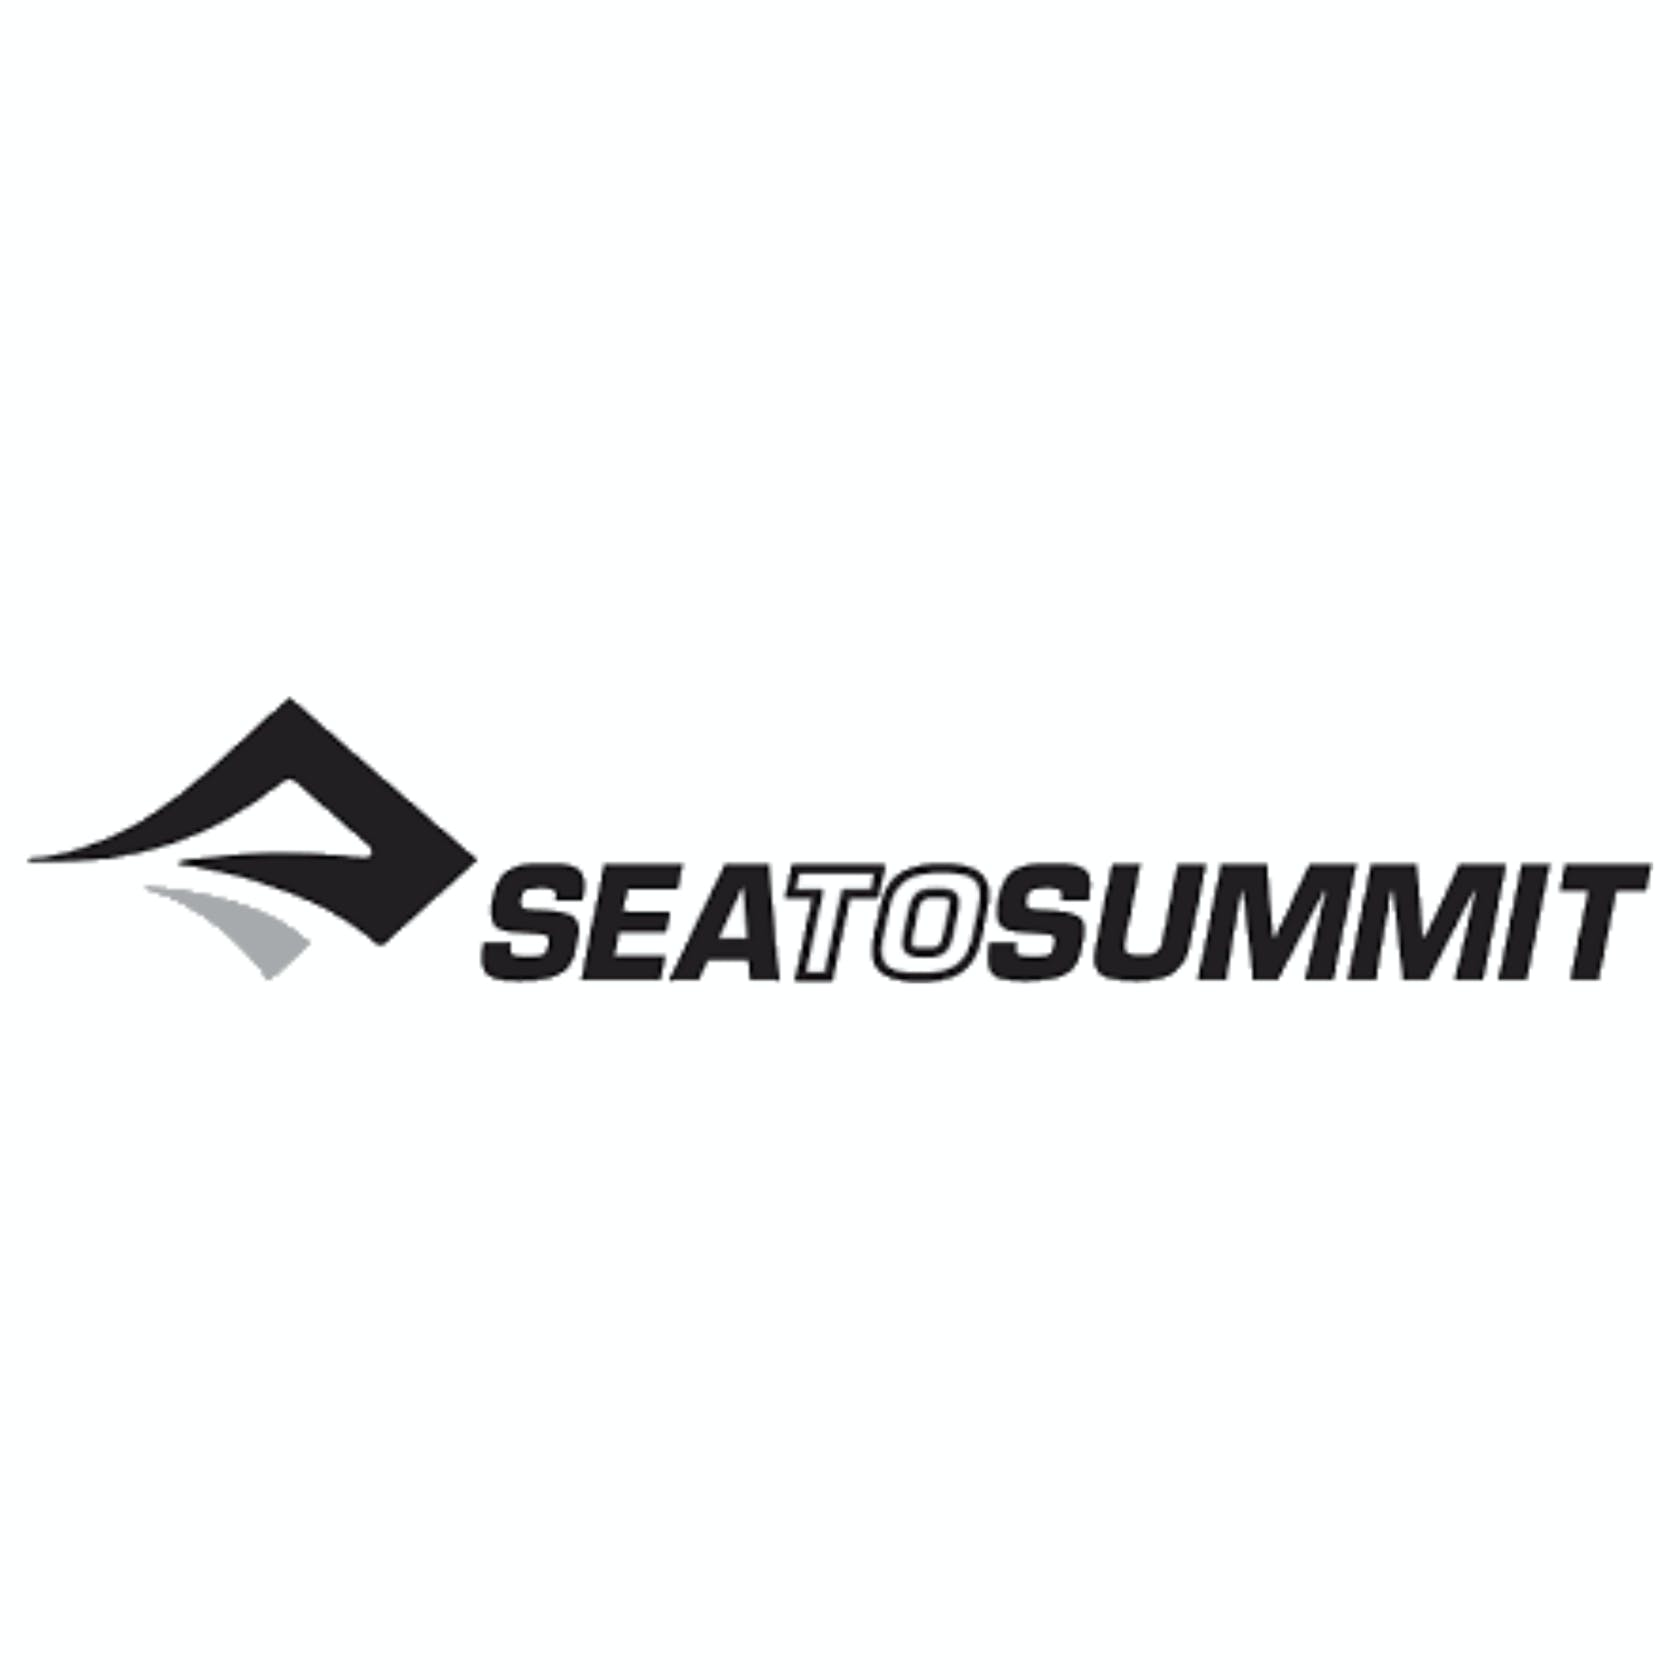 Sea to Summit shop online